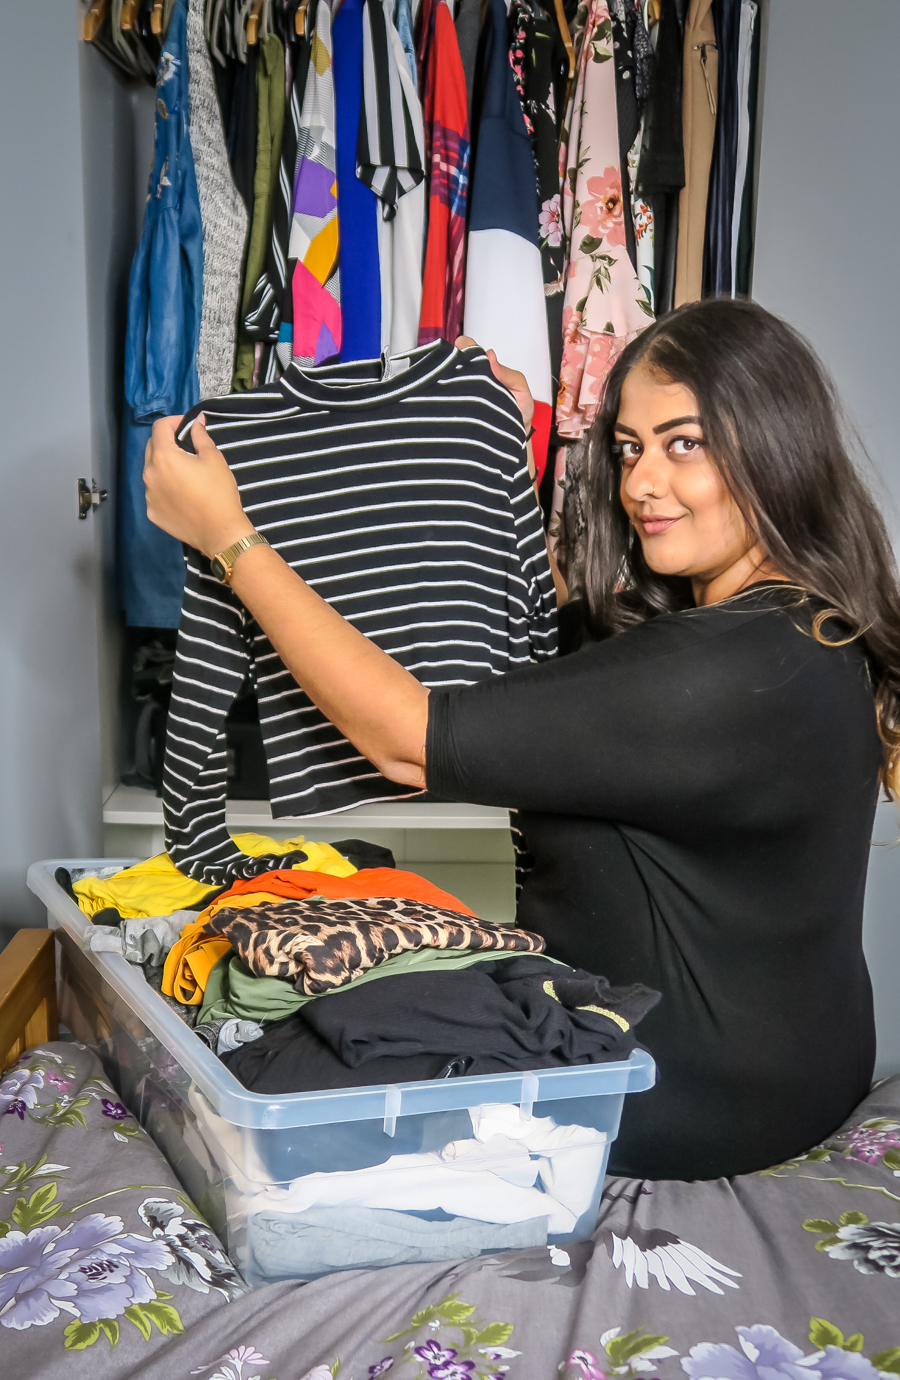 What To Wear In The Morning - Amrit holds up a black stripy top